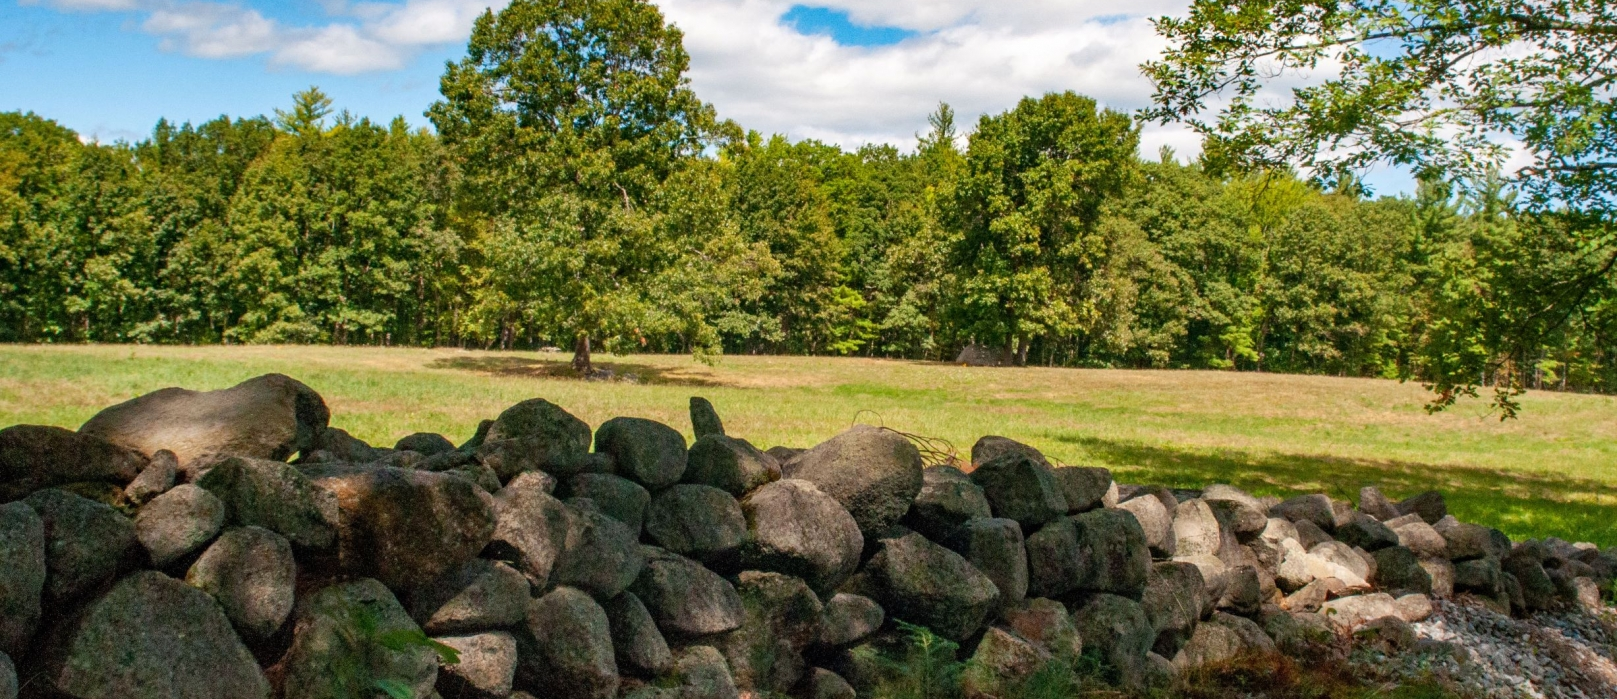 A view over a stonewall at Monson Center of trees and a field.